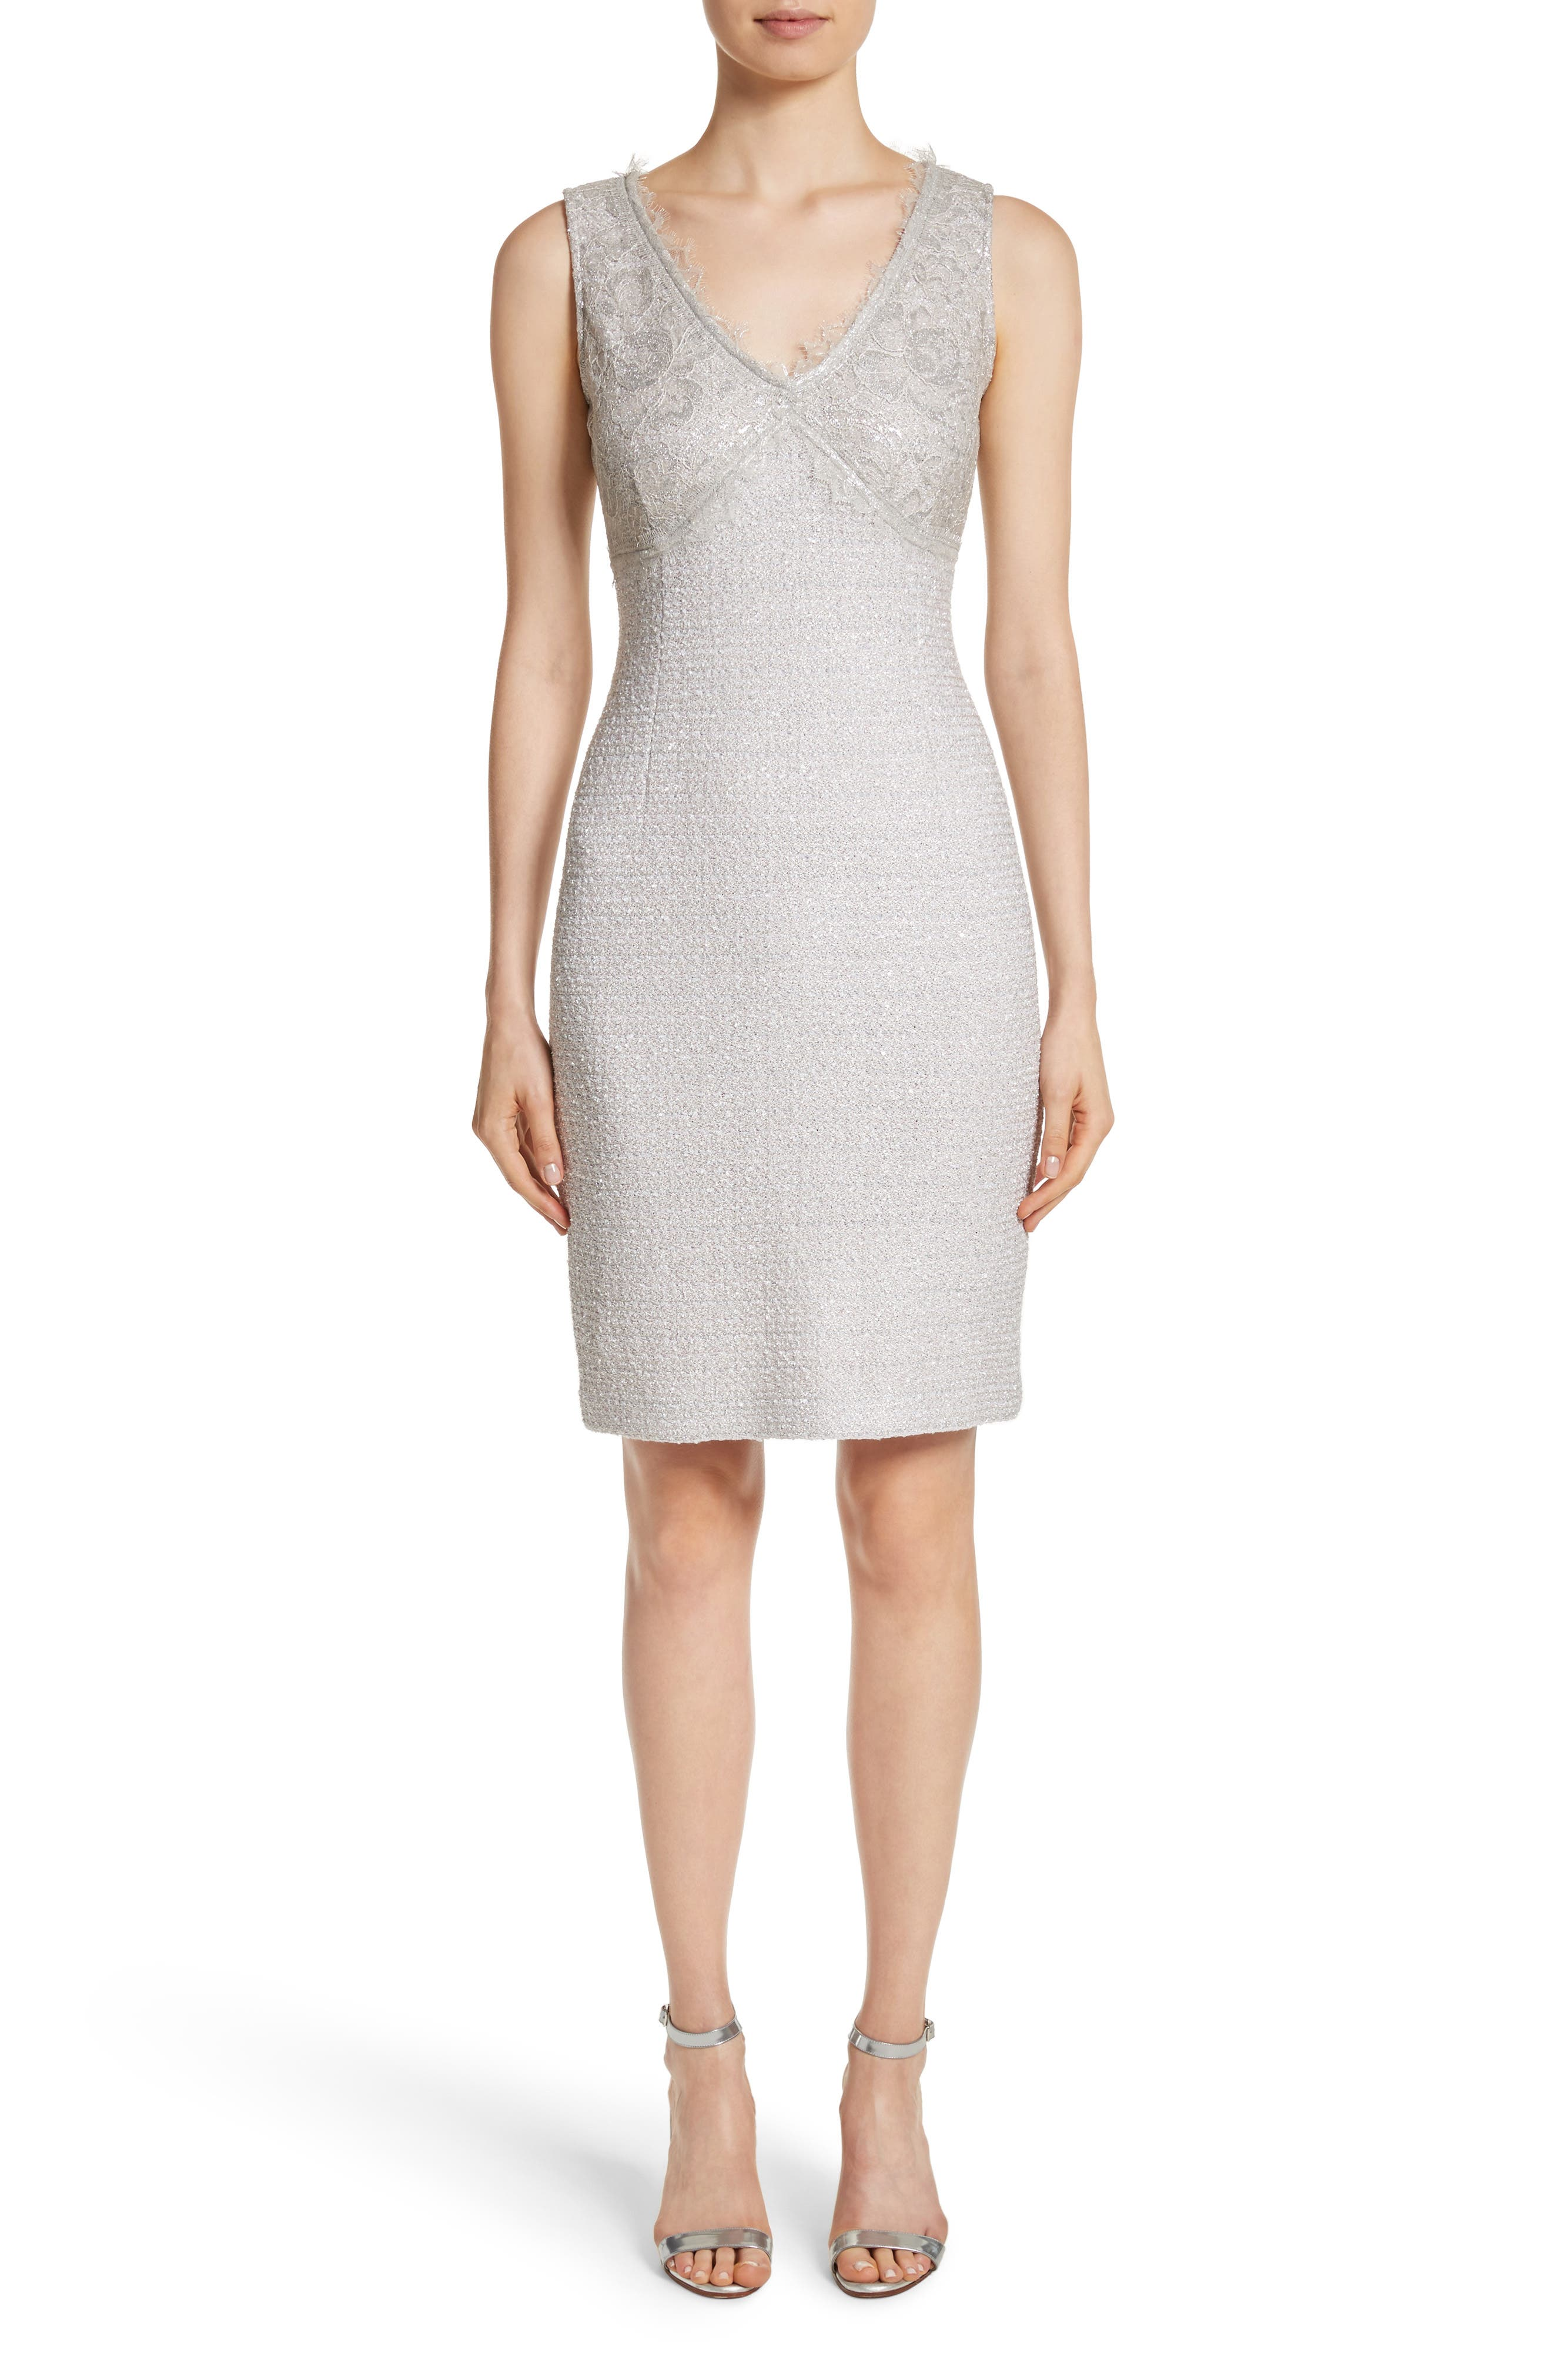 St. John Collection Metallic Eyelash Knit Dress